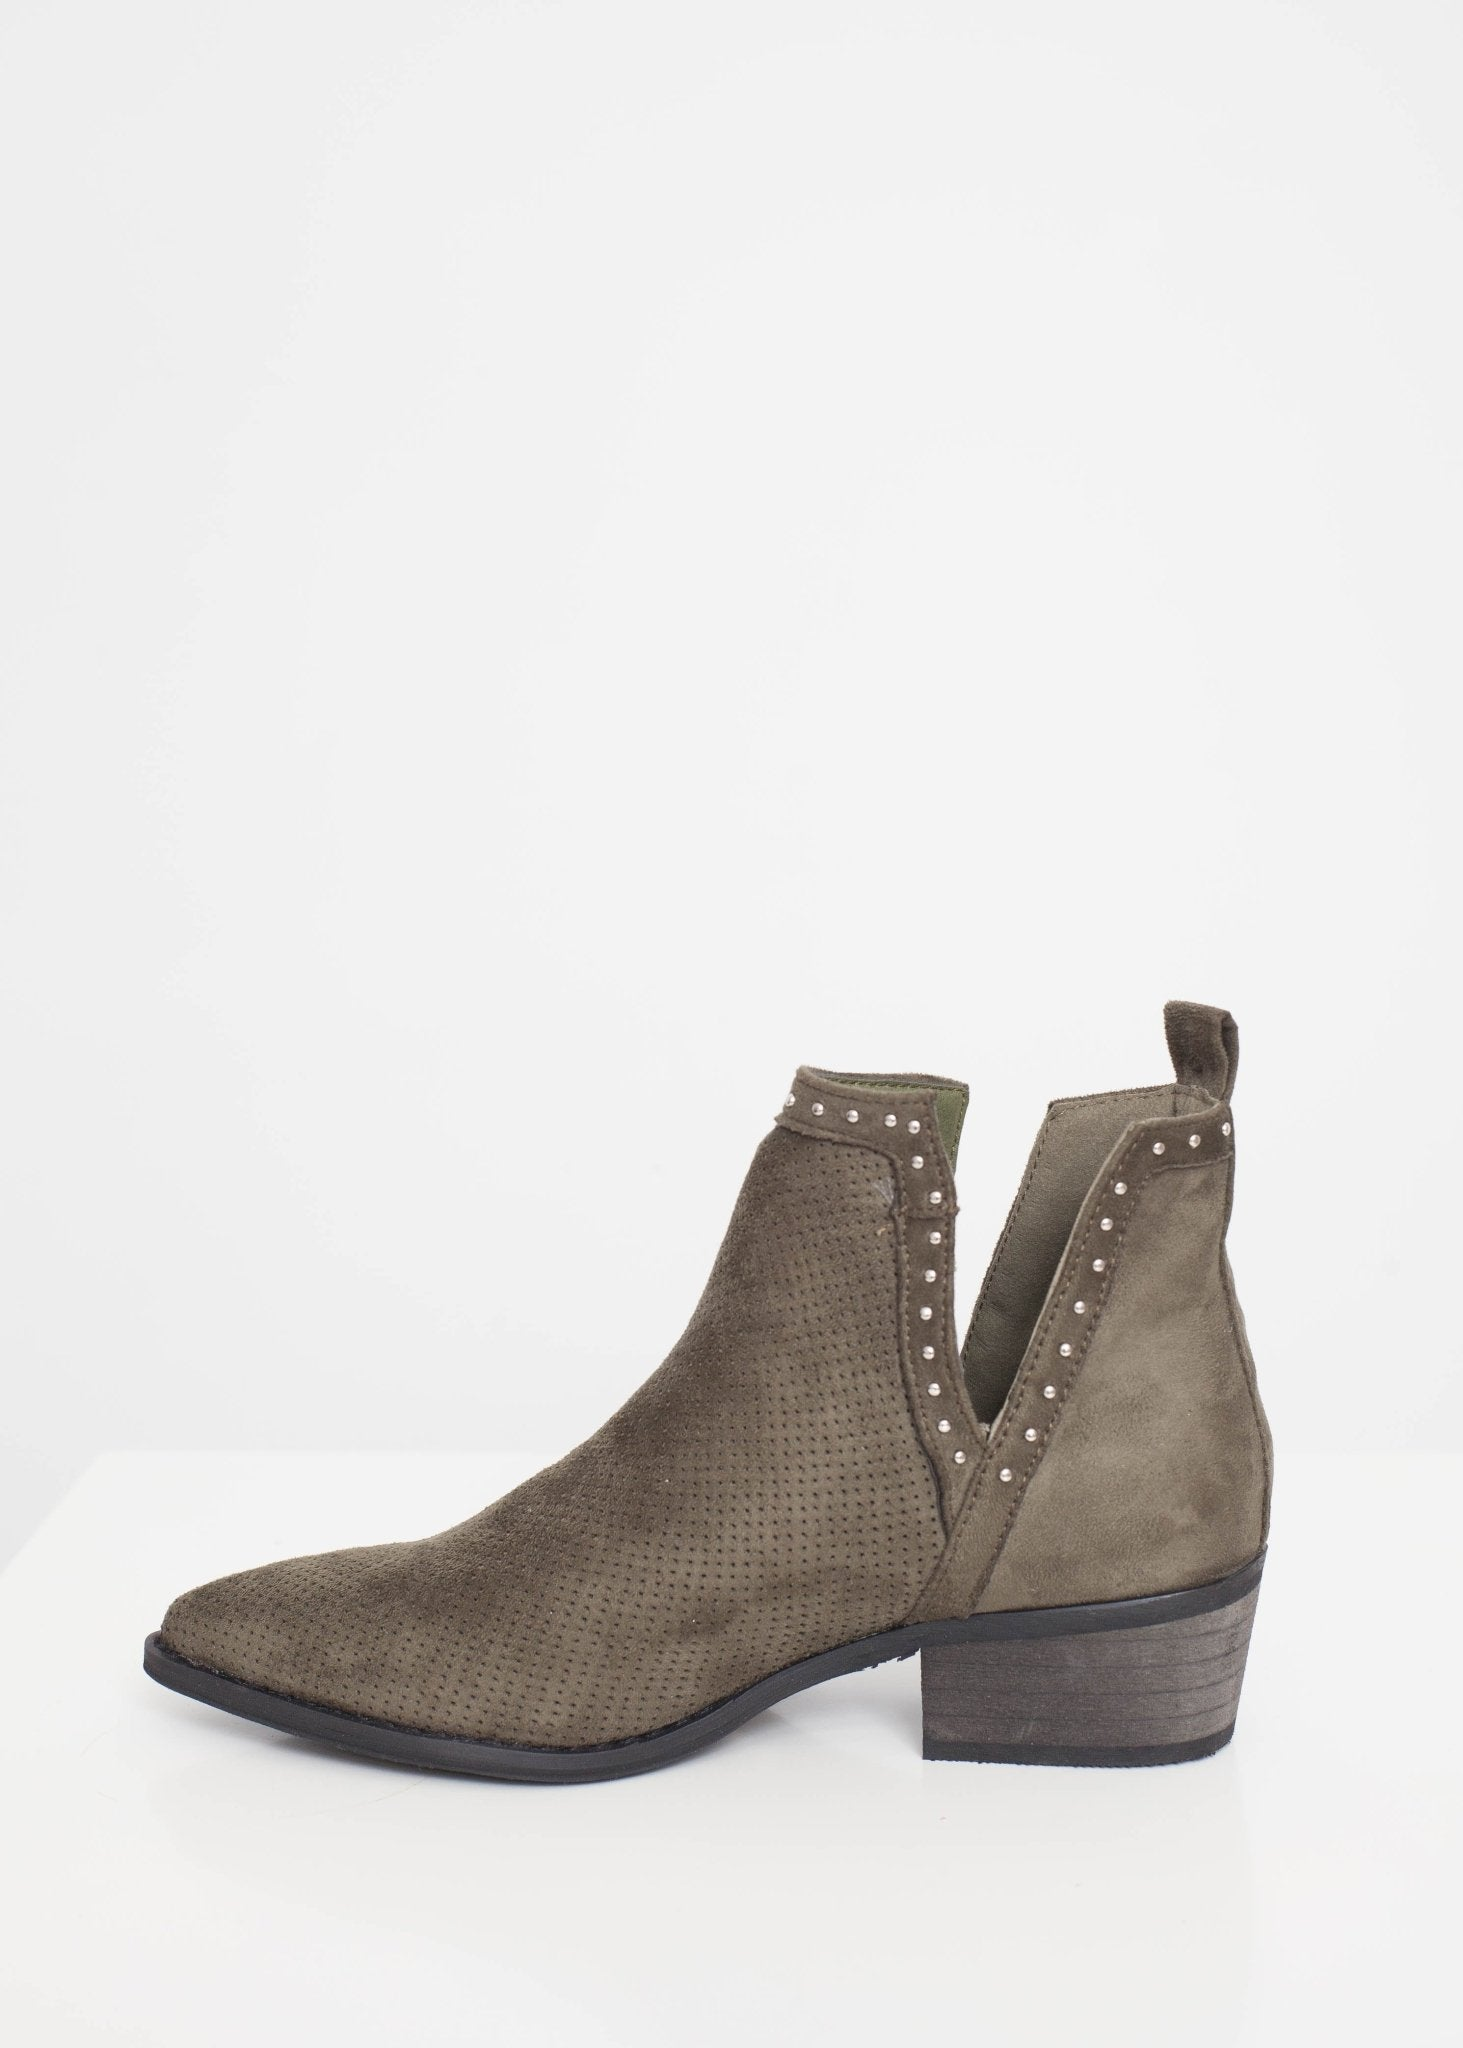 Gabby Cut Out Boot In Khaki - The Walk in Wardrobe